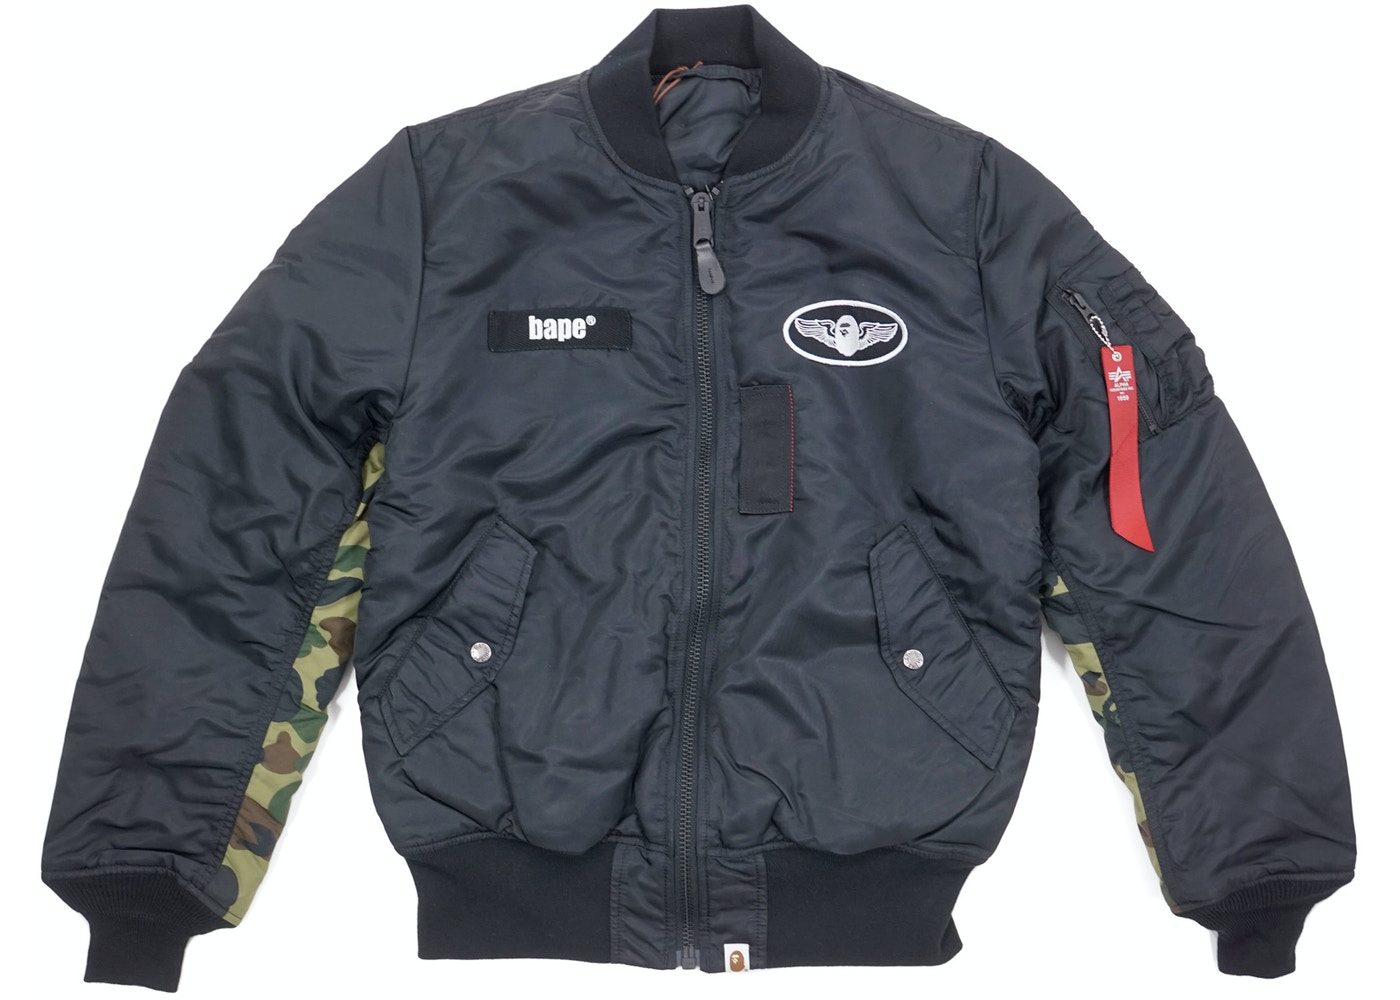 3a697f2708d5 BAPE 1st Camo Accent Reversible MA1 Bomber Flight Jacket Black Green -